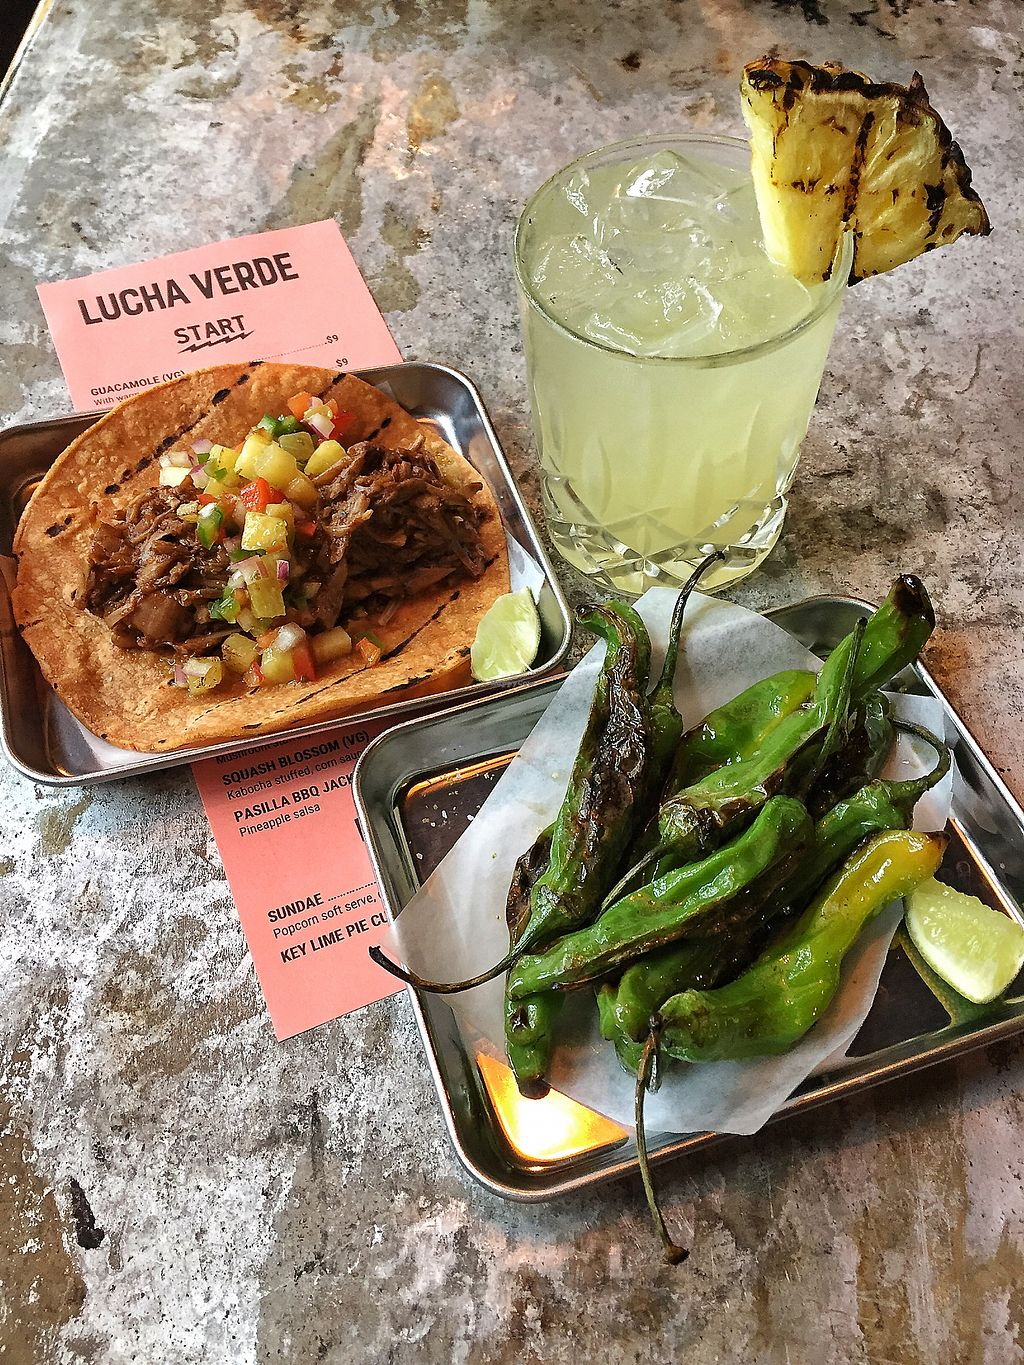 """Photo of Lucha Verde  by <a href=""""/members/profile/SwagDaddyMcYolo"""">SwagDaddyMcYolo</a> <br/>Limo Wreck (mezcal) cocktail, Pasillo BBQ Jackfruit taco, blistered shisho peppers <br/> July 2, 2017  - <a href='/contact/abuse/image/94740/276062'>Report</a>"""